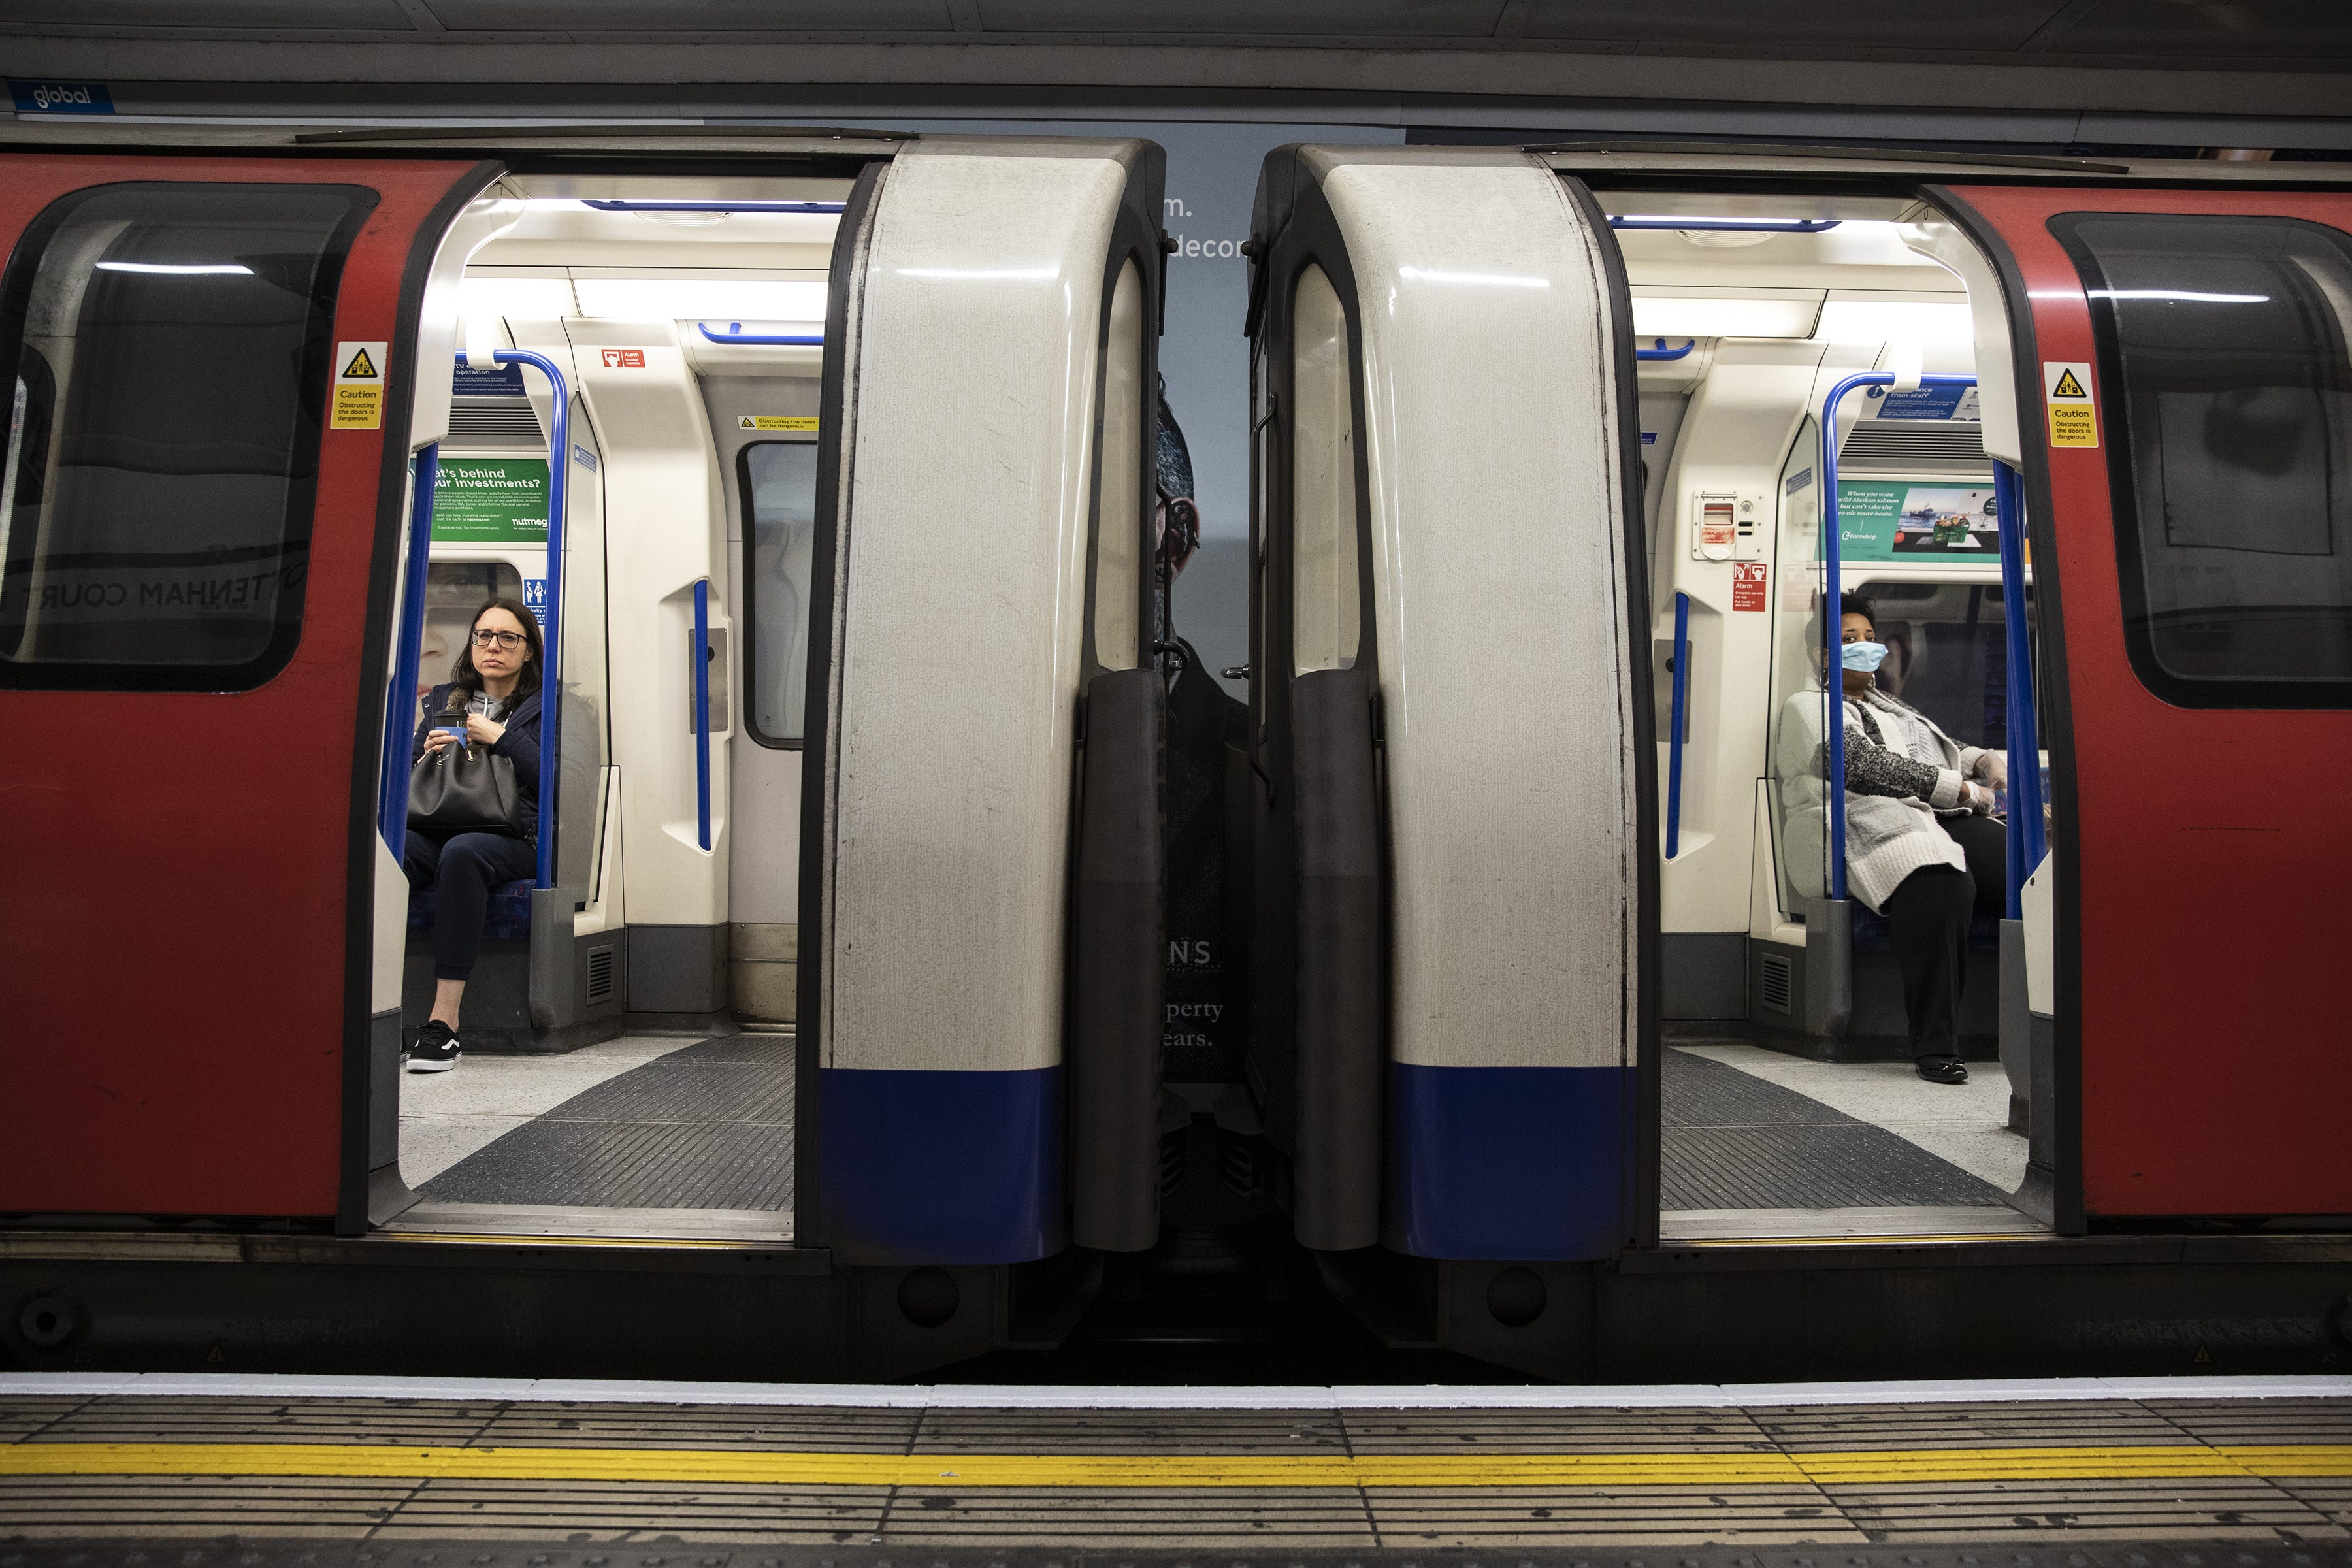 Slide 40 of 113: Passengers ride the tube on March 19, 2020 in London, England. Transport for London announced the closure of up to 40 stations as officials advised against non-essential travel. Bus and London Overground service will also be reduced.